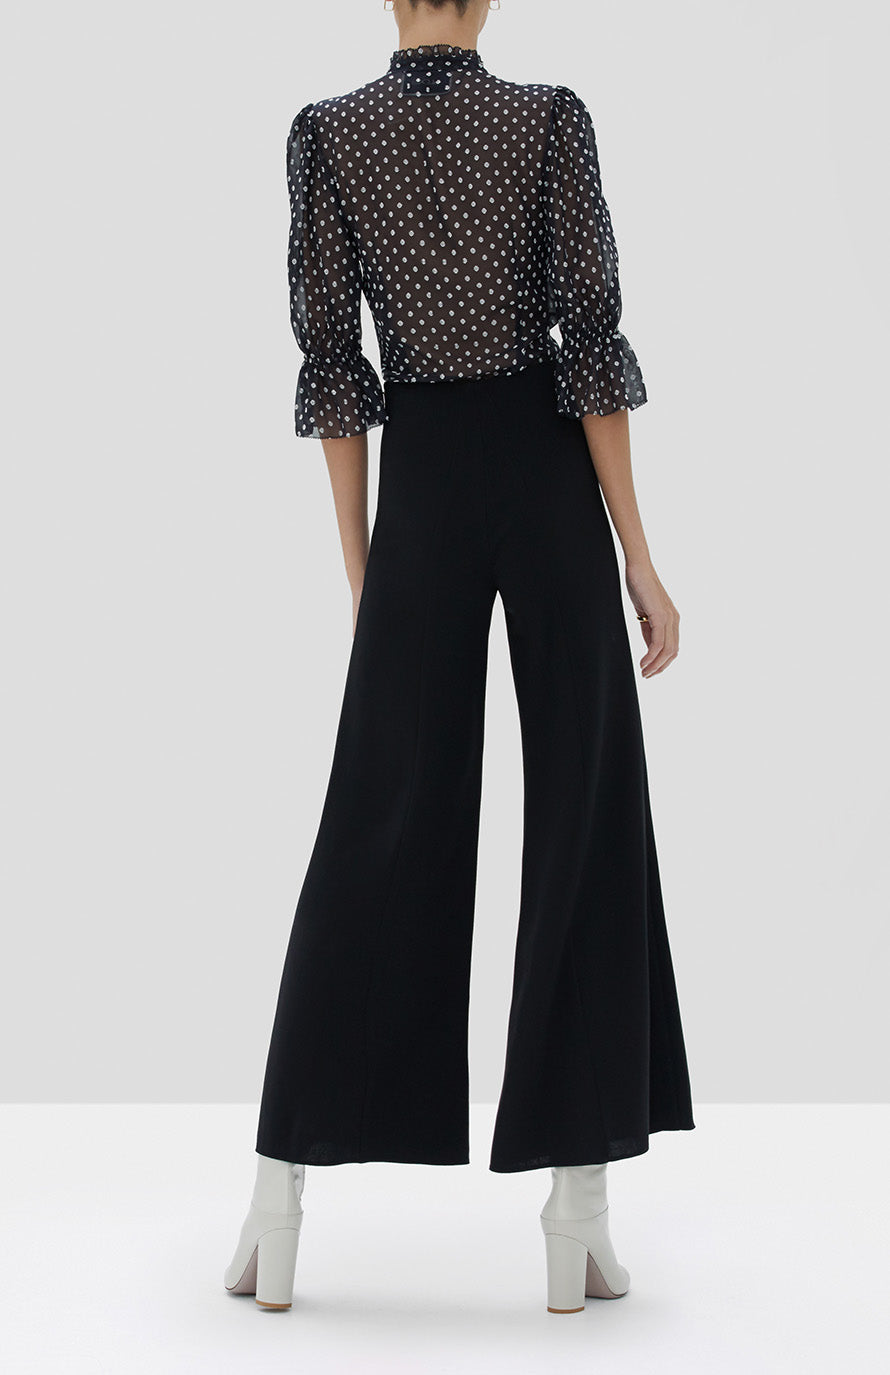 Alexis Ashden Pant Black, Calixte Top in Black Embroidery Dot from the Fall Winter 2019 Collection - Rear View